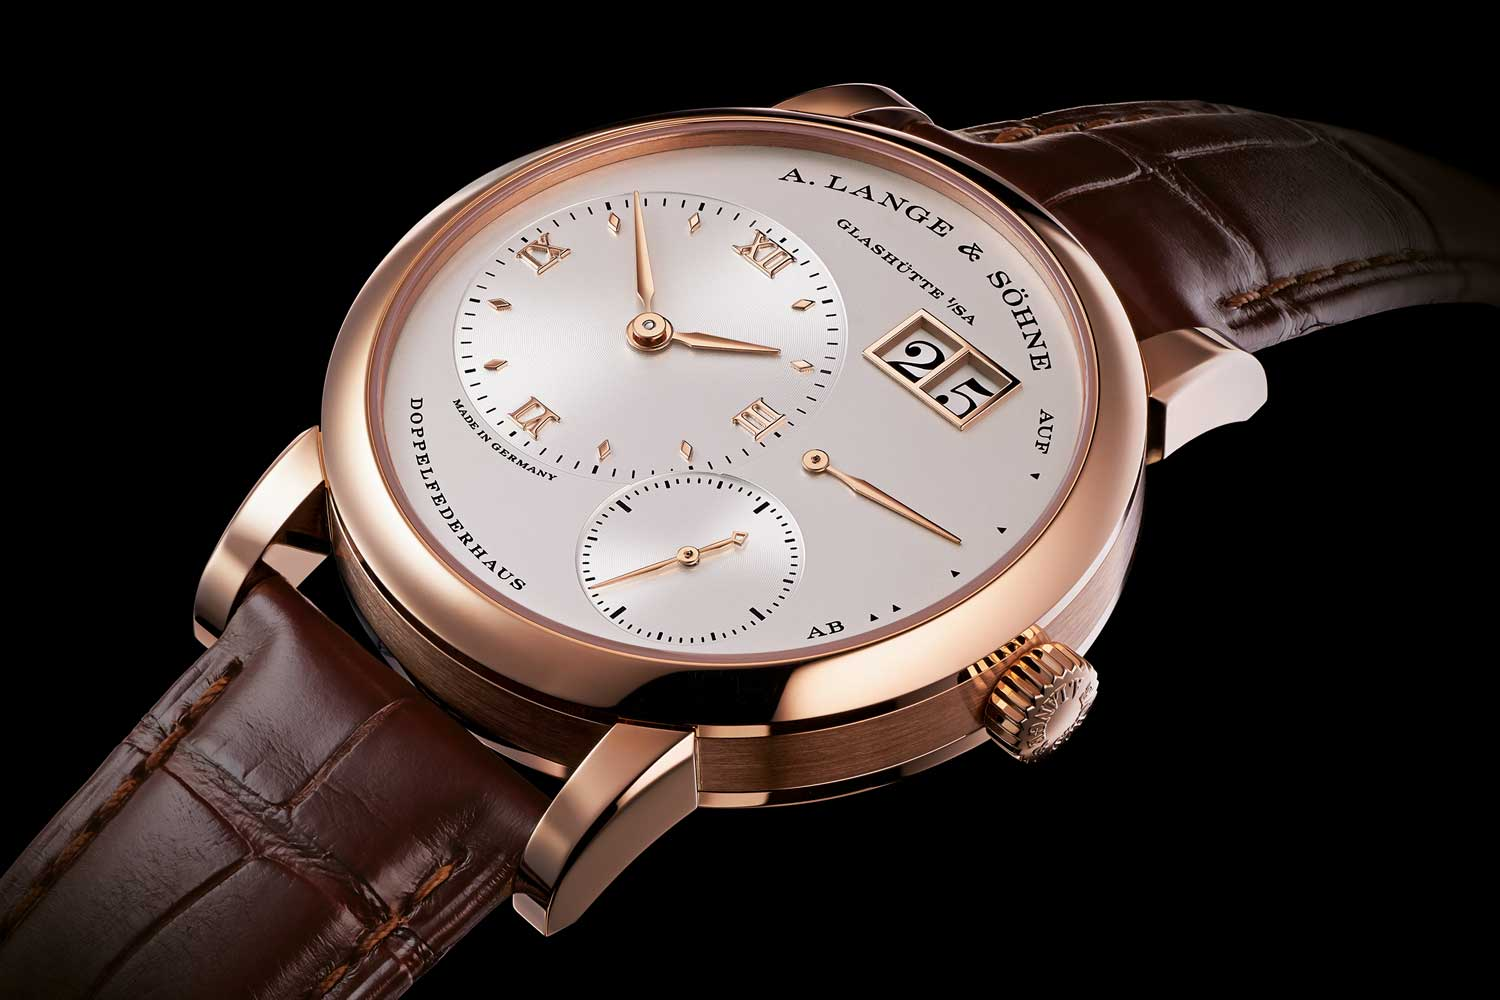 The ref. 191.032 Lange 1 in pink gold, is a redesigned take on the the staple, launched in 2015